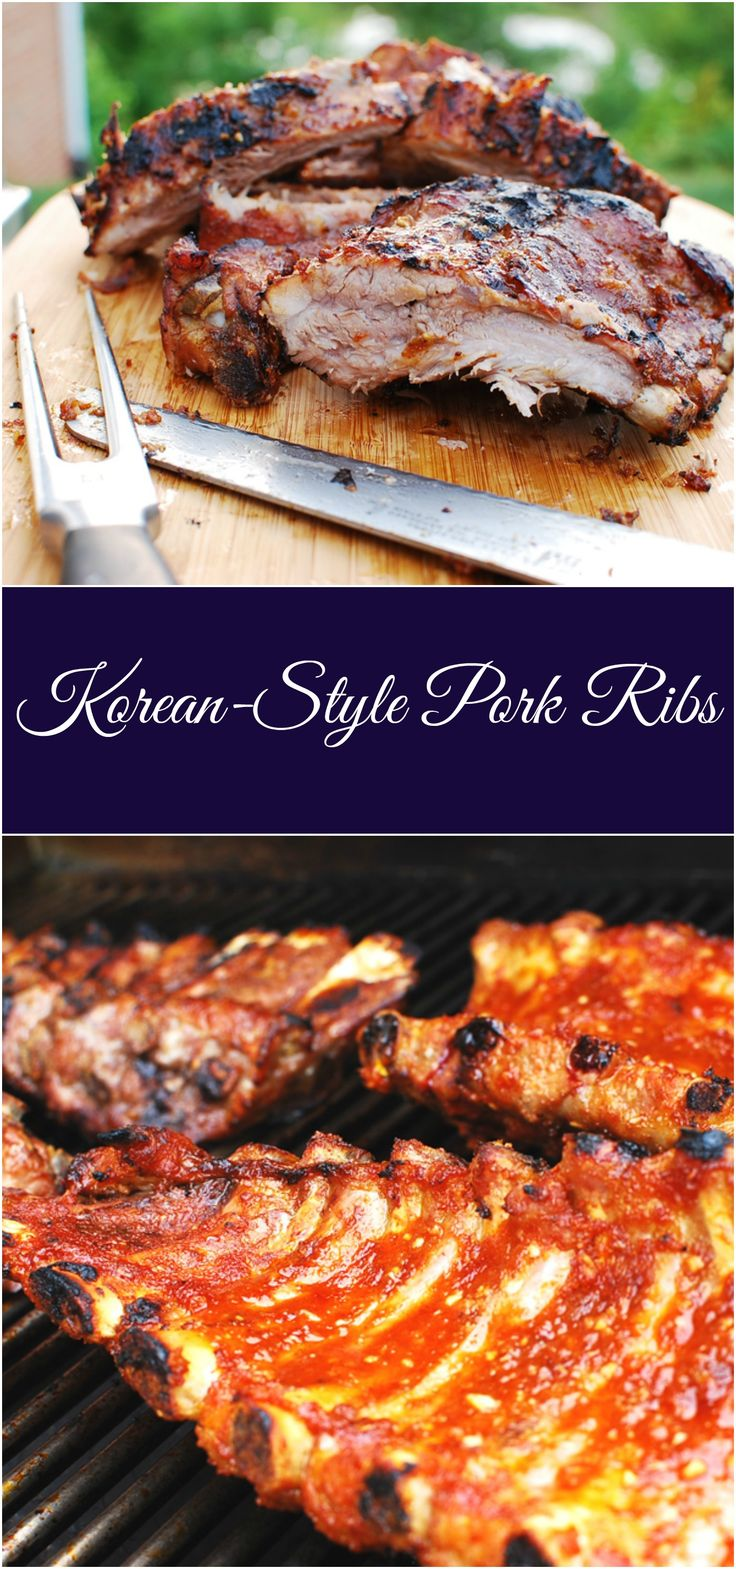 These Korean style ribs can be made with a sweet and savory marinade or a spicy marinade! The ribs will be a nice change from the usual BBQ sauce version.